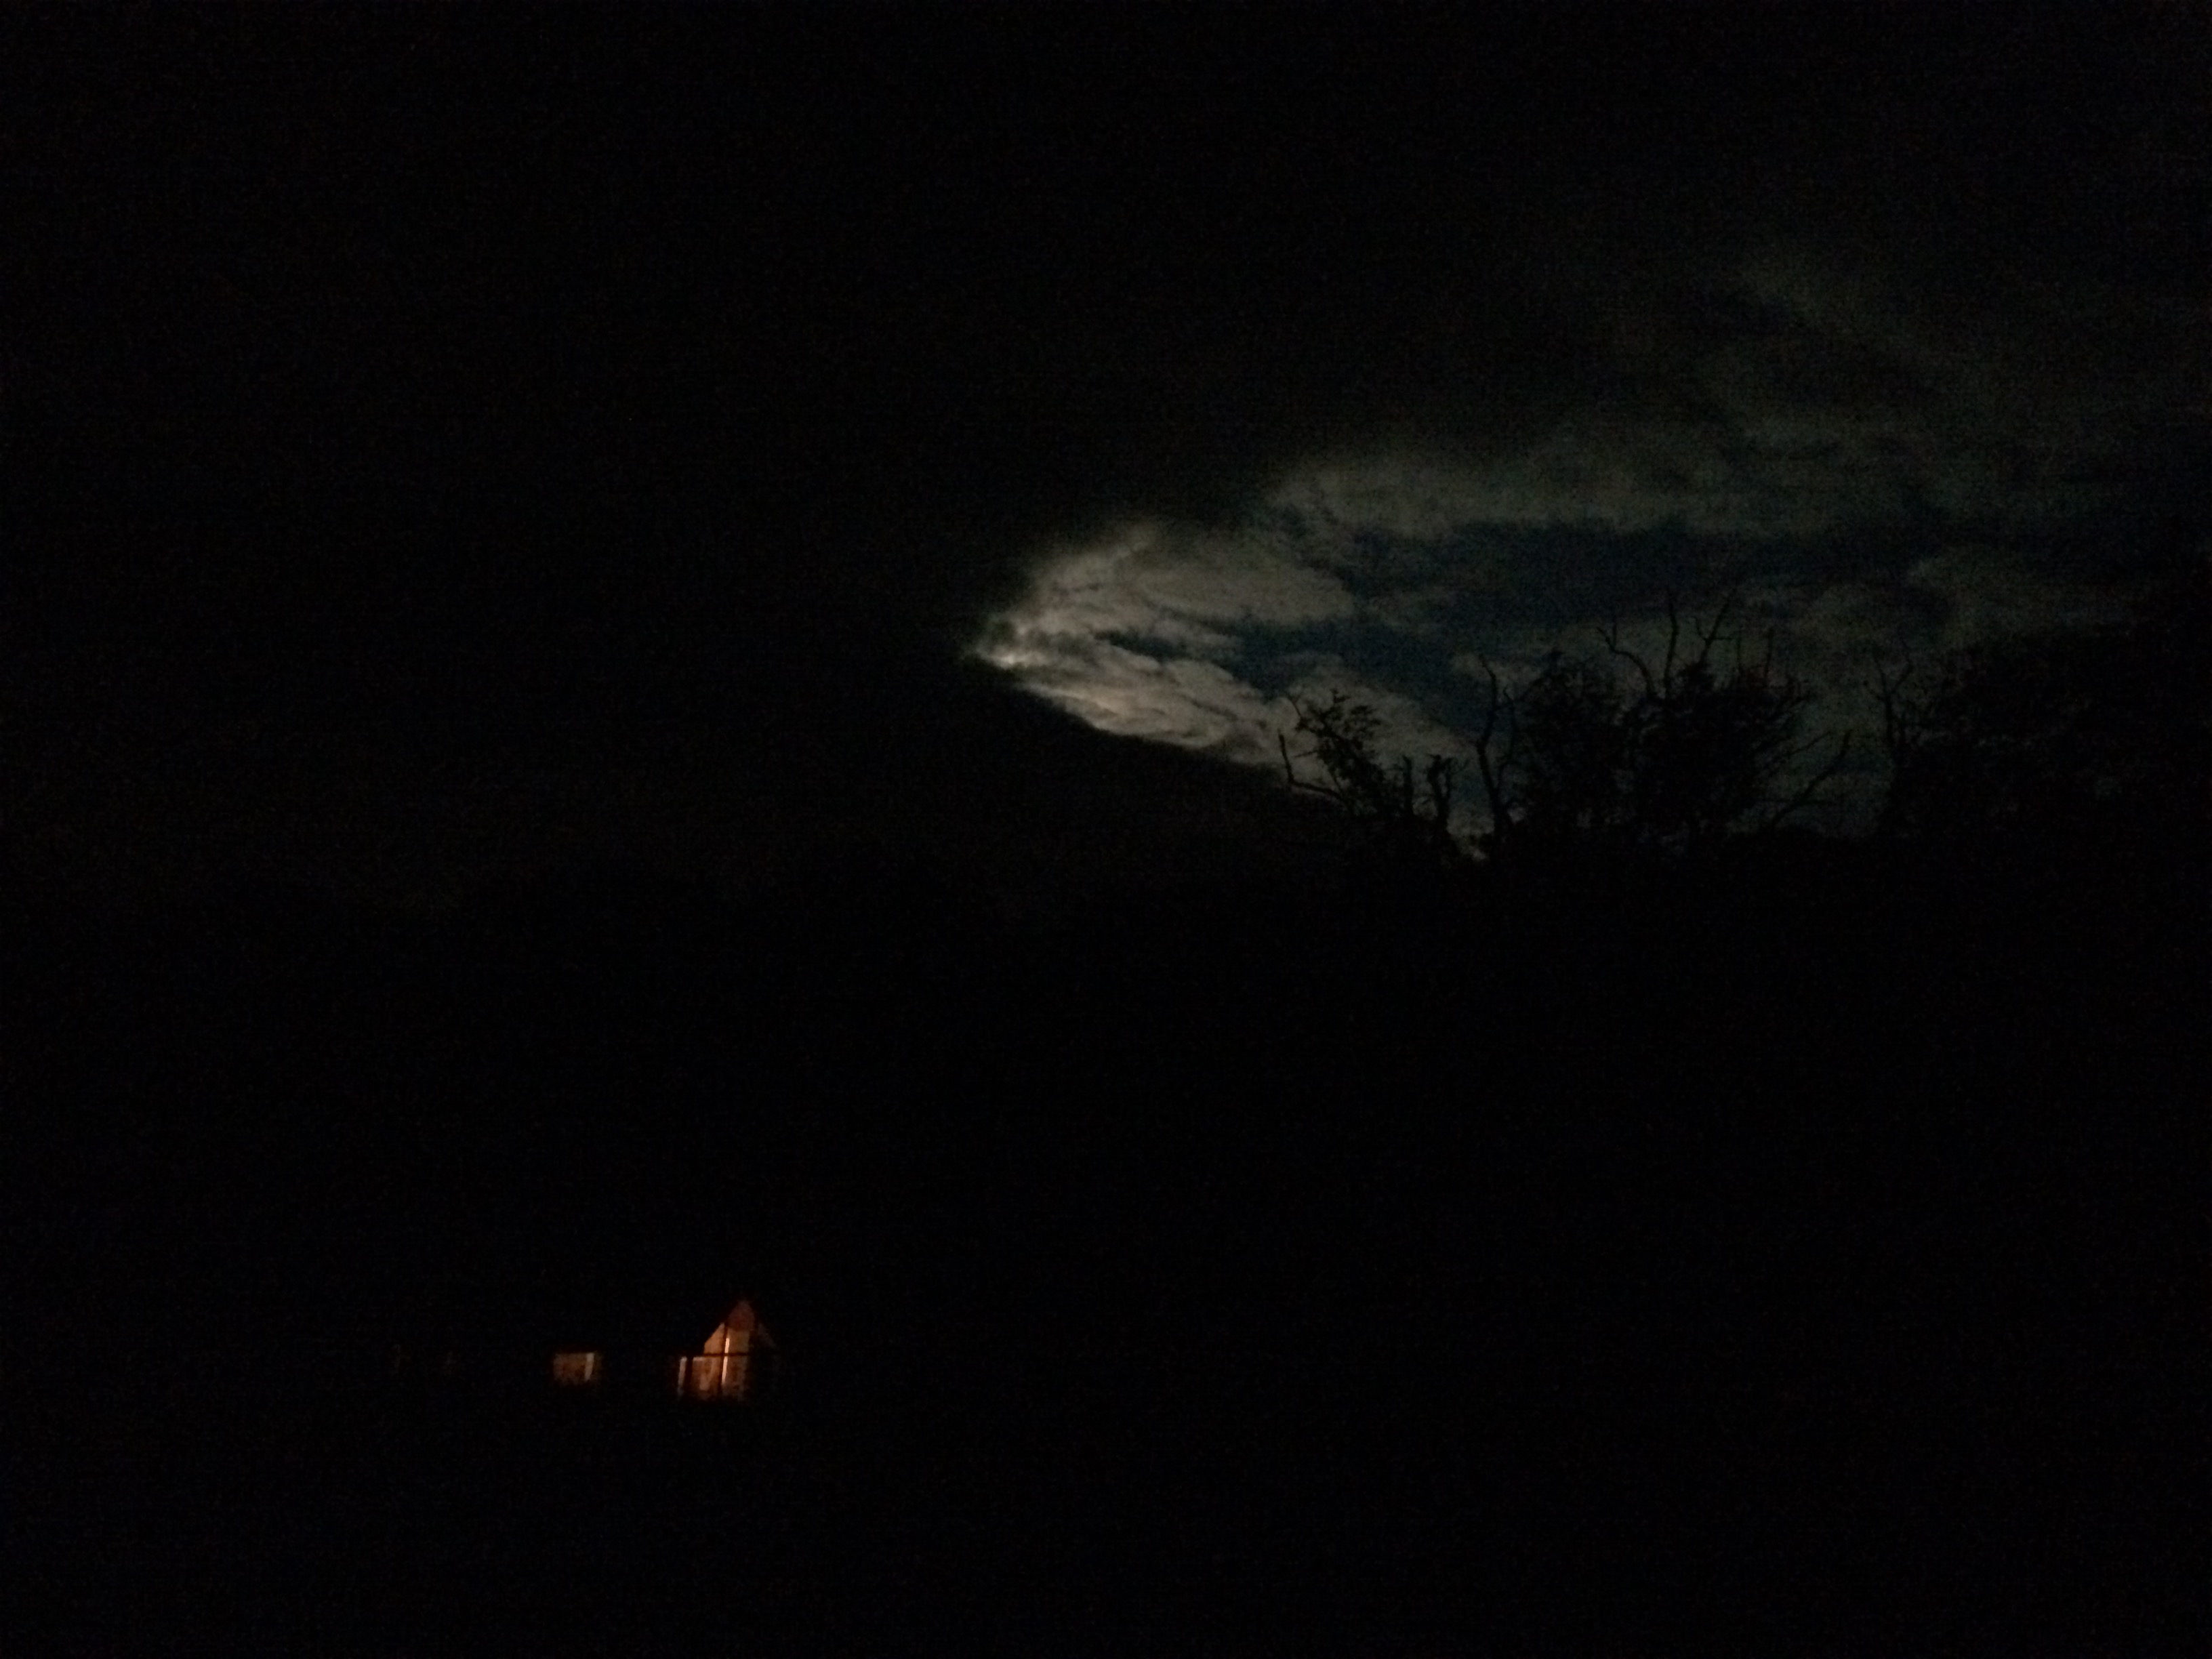 August Full Moon behind the clouds, my cabin, (named Clare) below, Hi Ney Ni/Here I Am, safe in Home and Hearth and Enraptured in Eire.